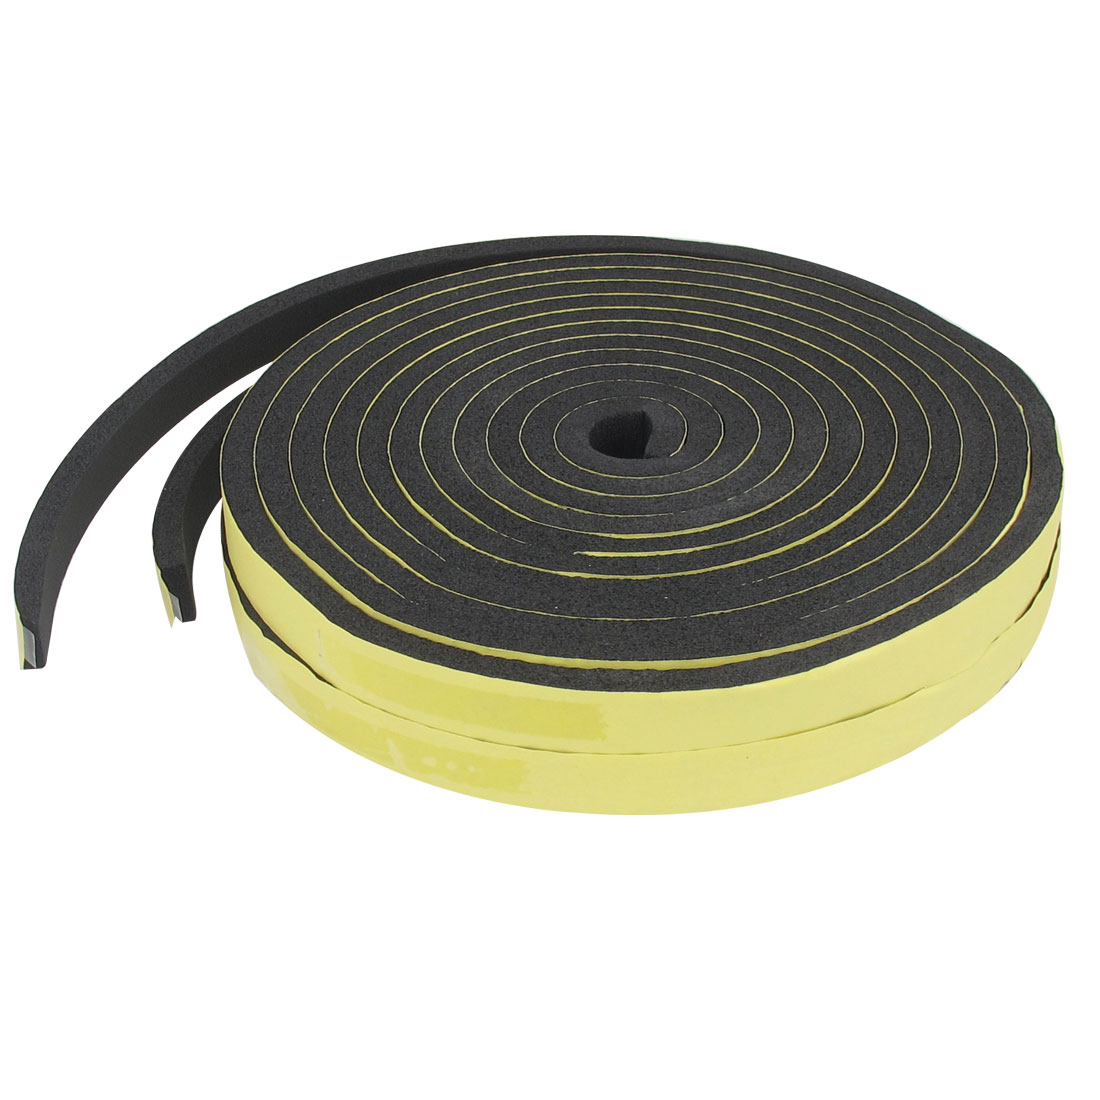 2 Pcs 500cm Length 2cm Wide Black Foam Self Adhesive Air Sealed Strip for Auto Car Door